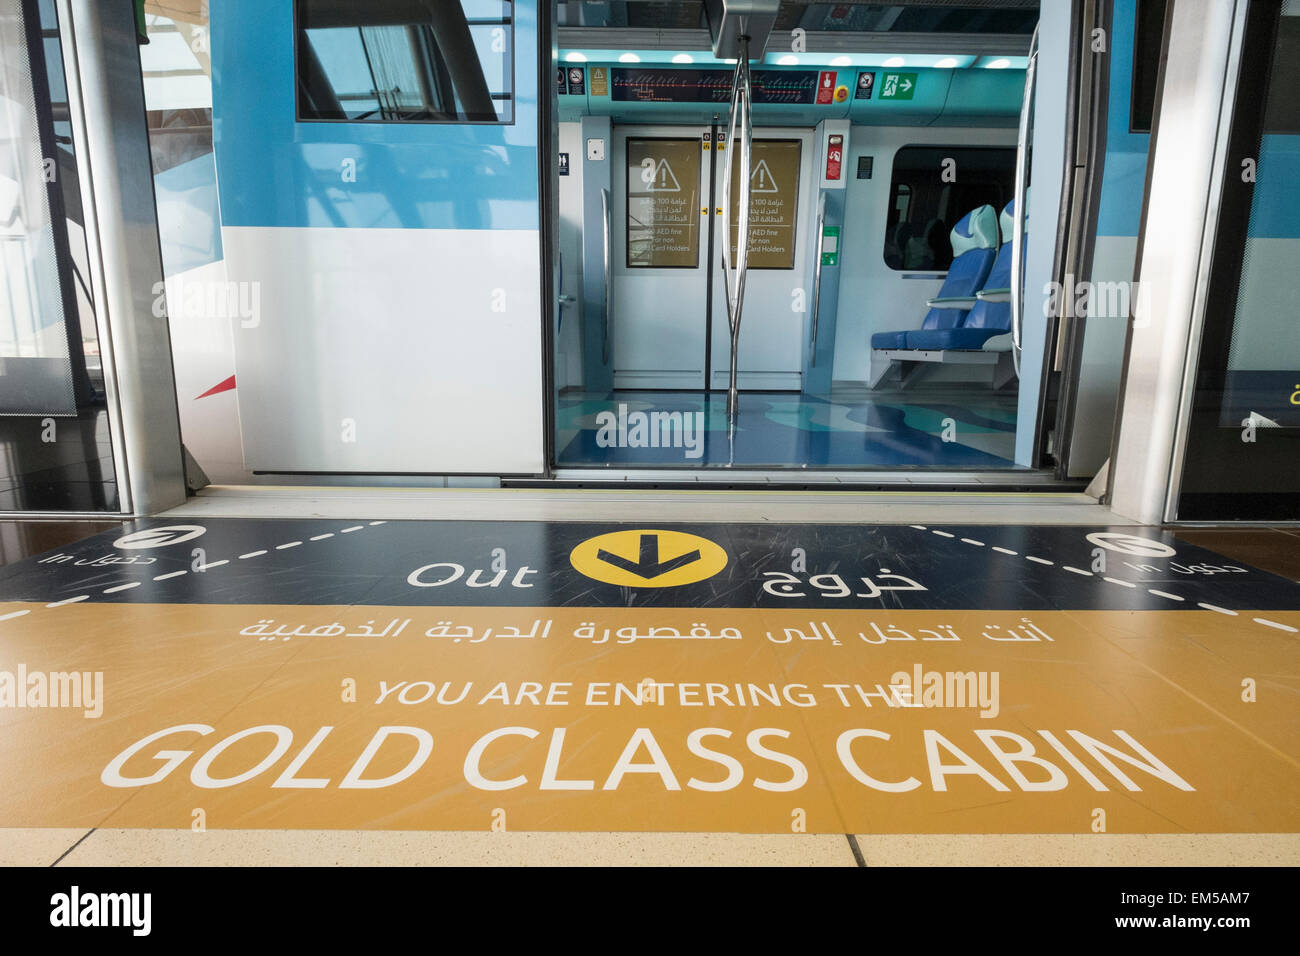 Gold Class carriage on metro train in Dubai United Arab Emirates - Stock Image